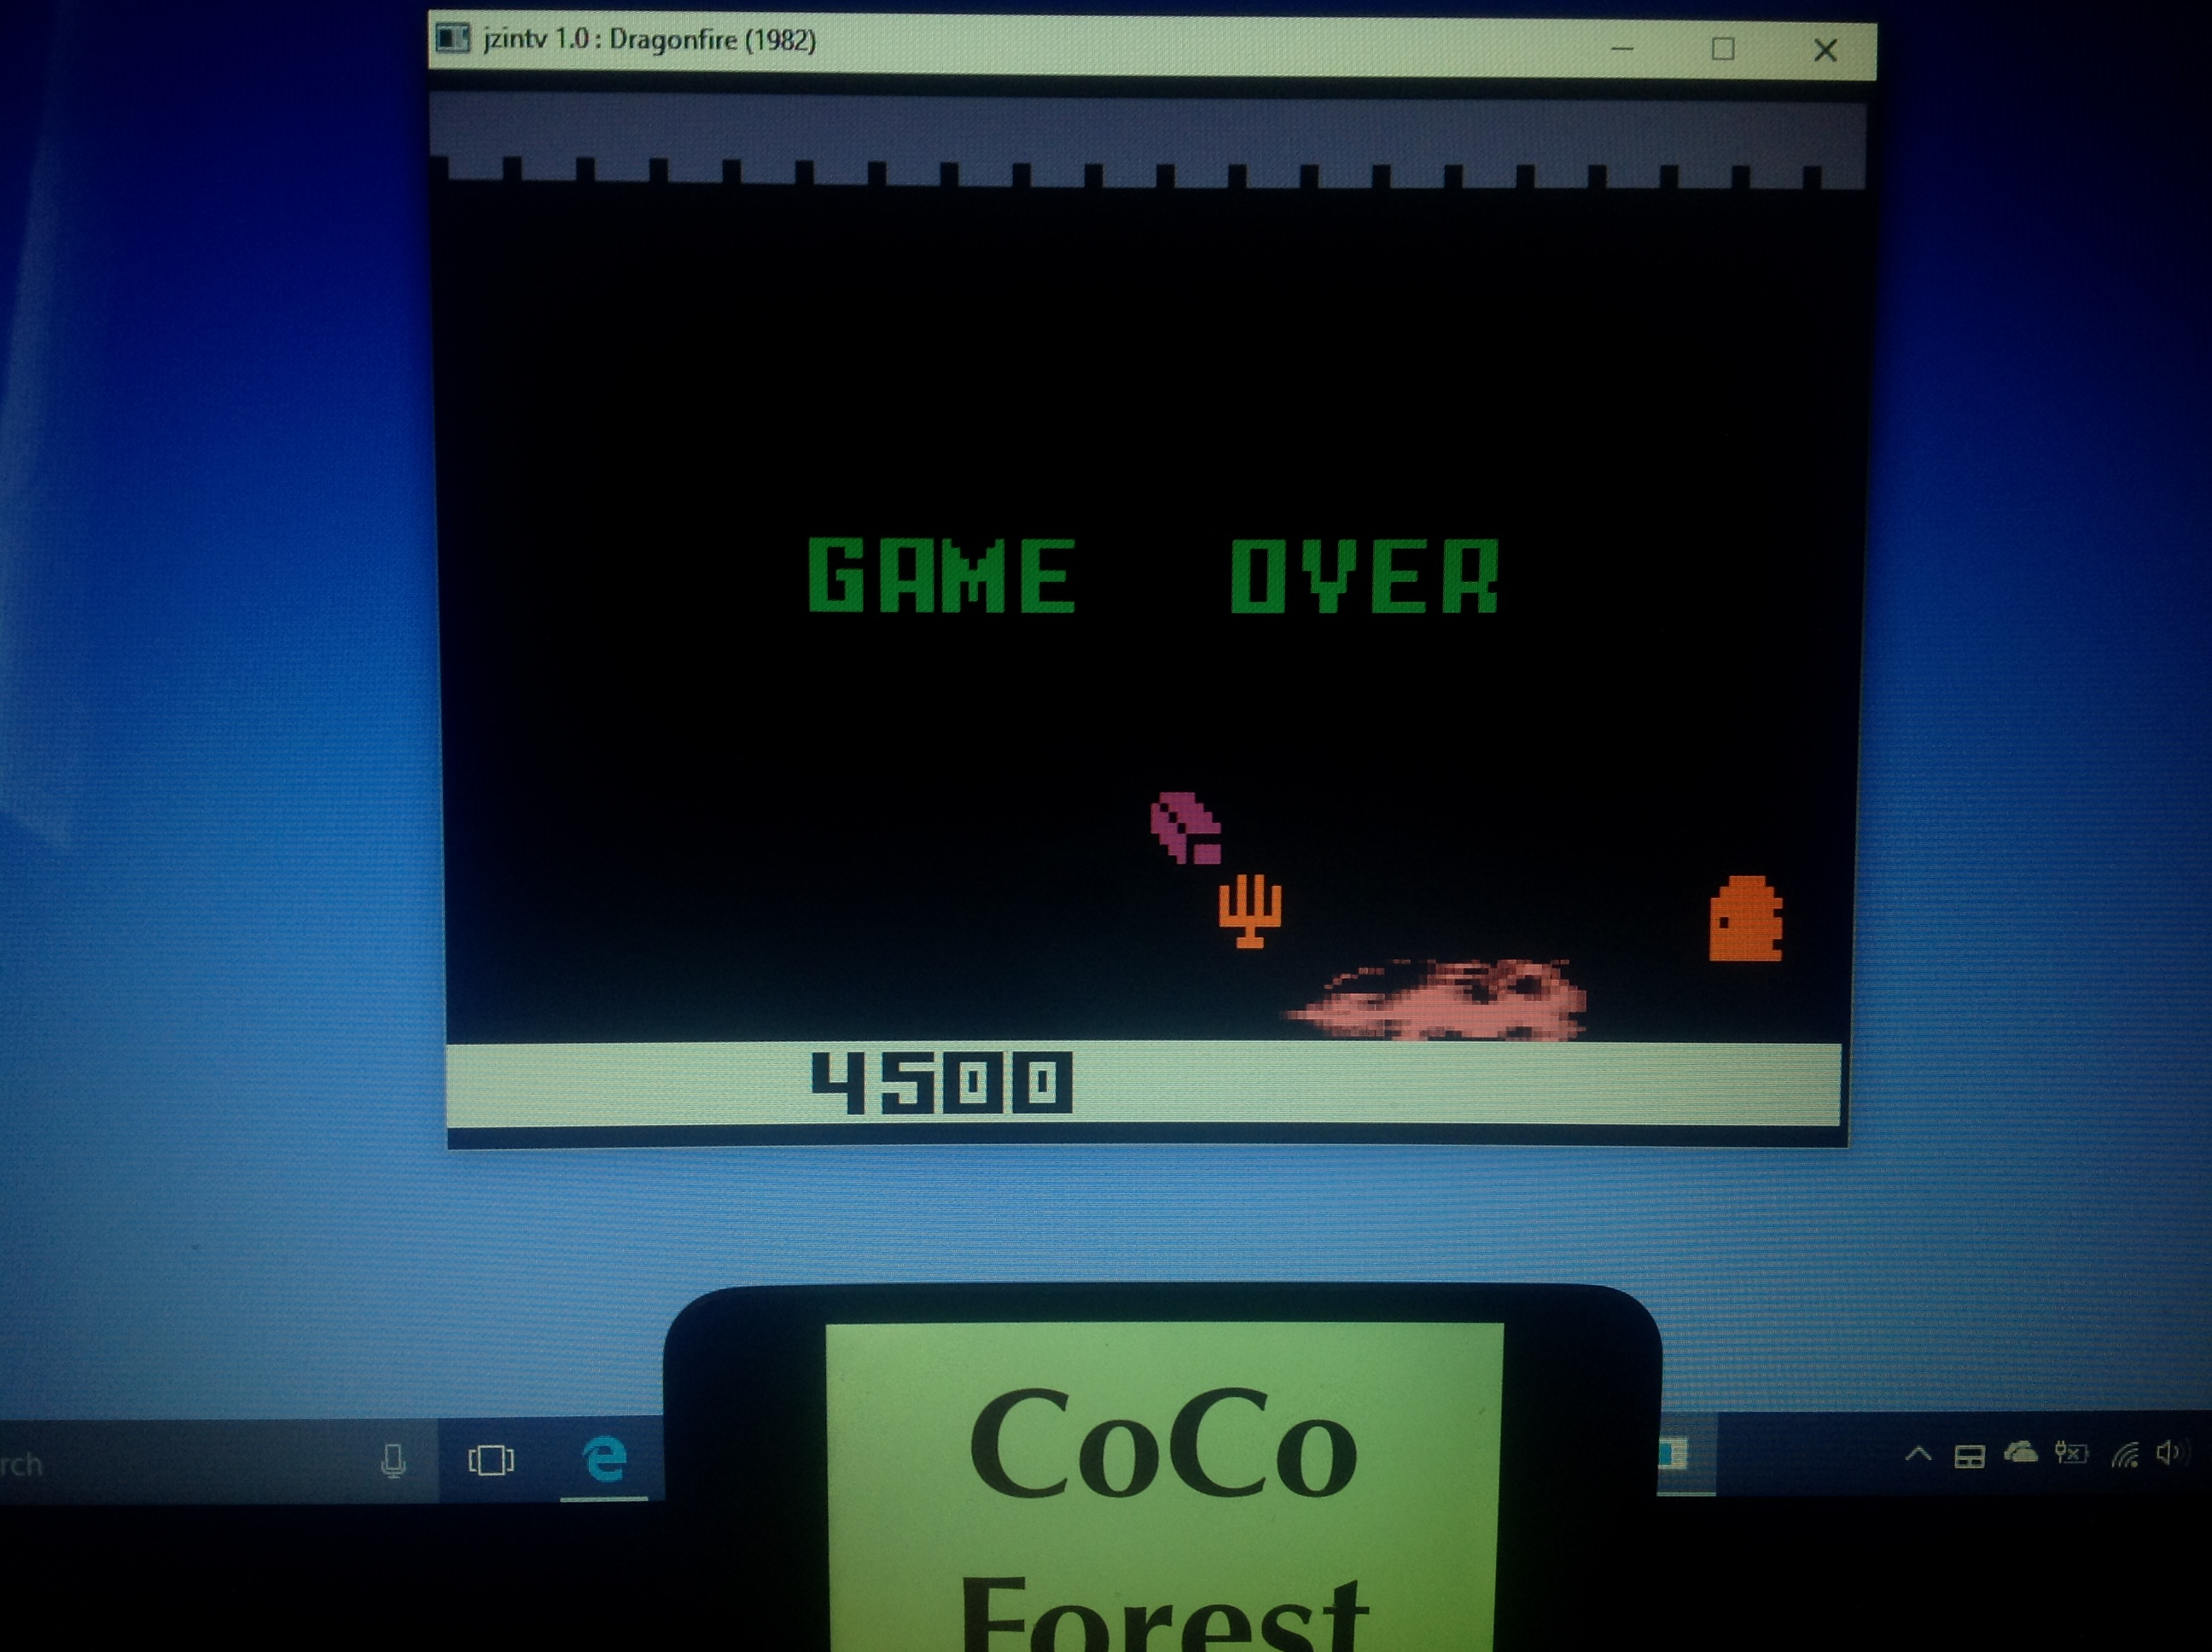 CoCoForest: Dragonfire (Intellivision Emulated) 4,500 points on 2018-01-23 07:50:13